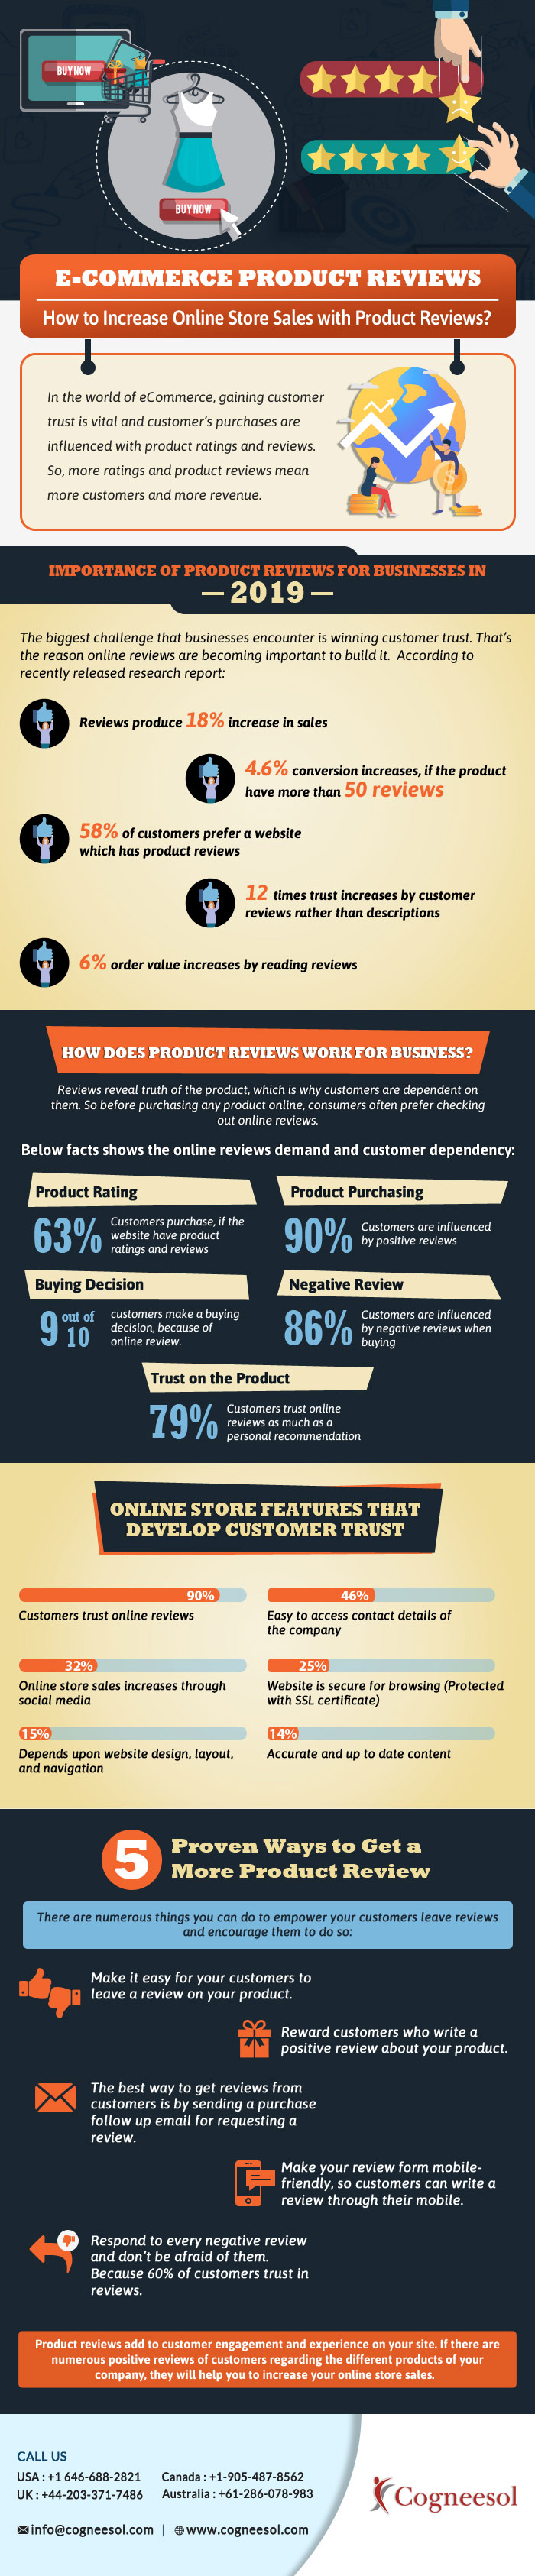 How to Increase Online Store Sales With Product Reviews